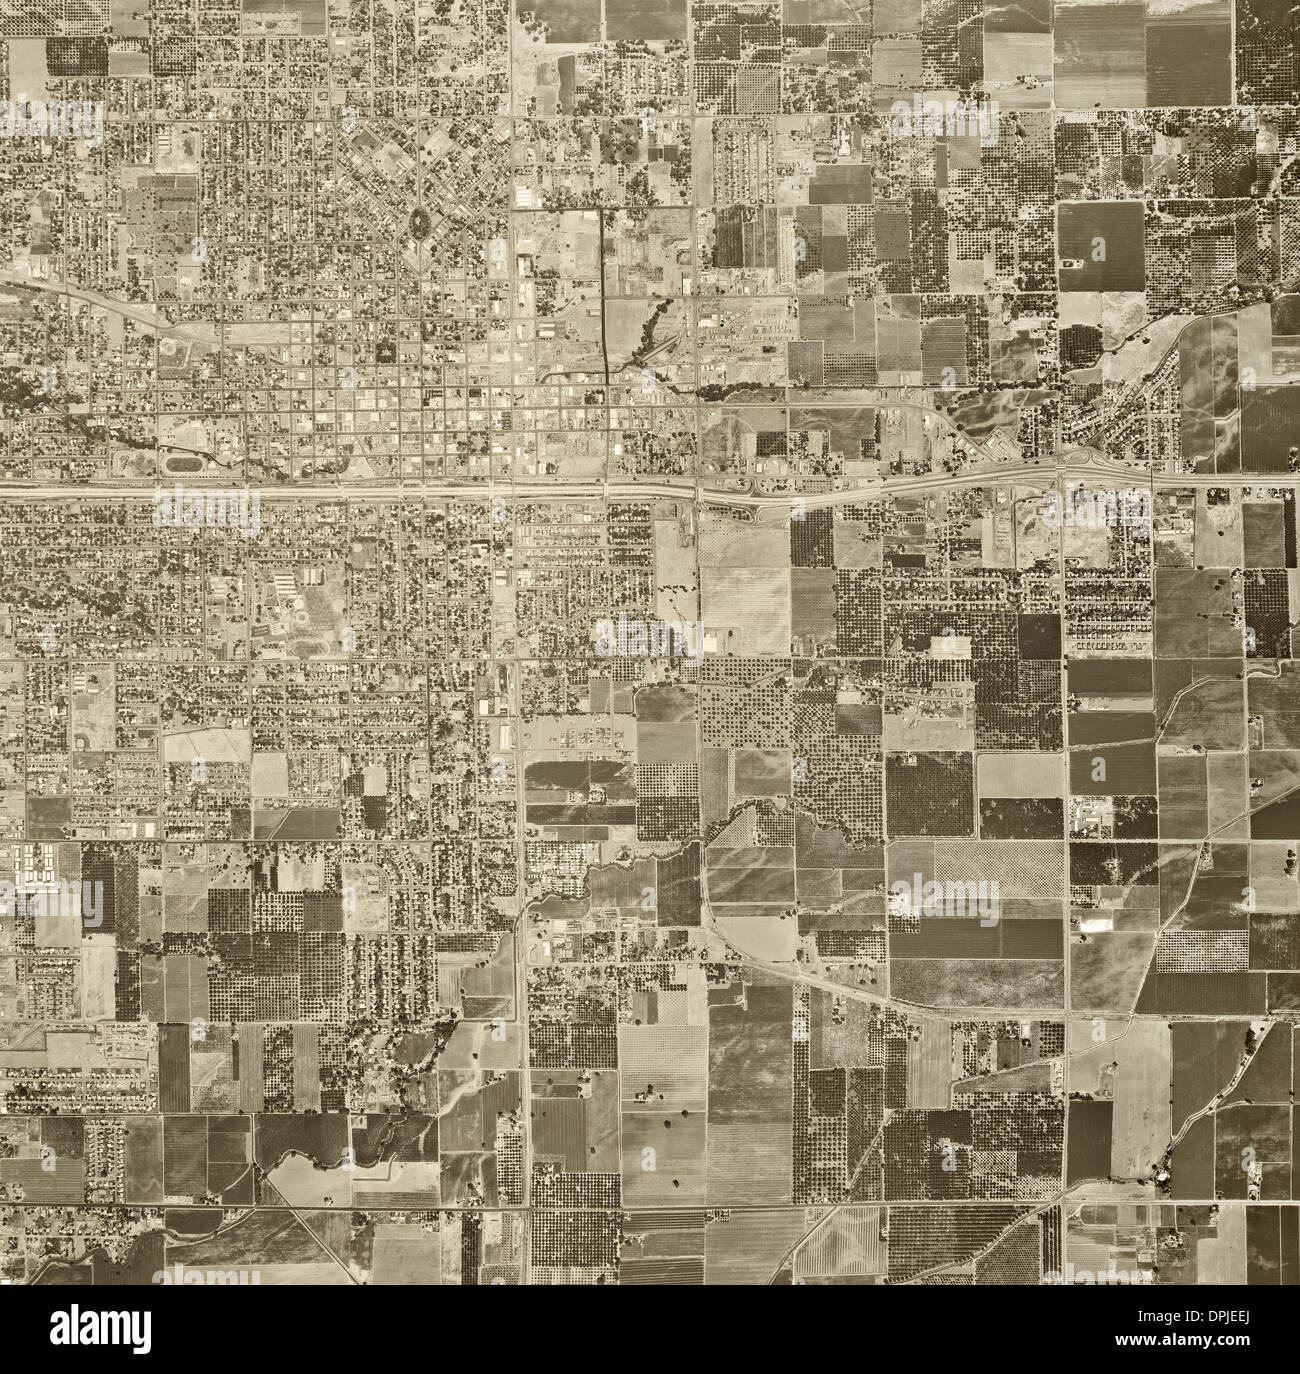 historical aerial photograph Visalia, Tulare county, California, 1969 - Stock Image